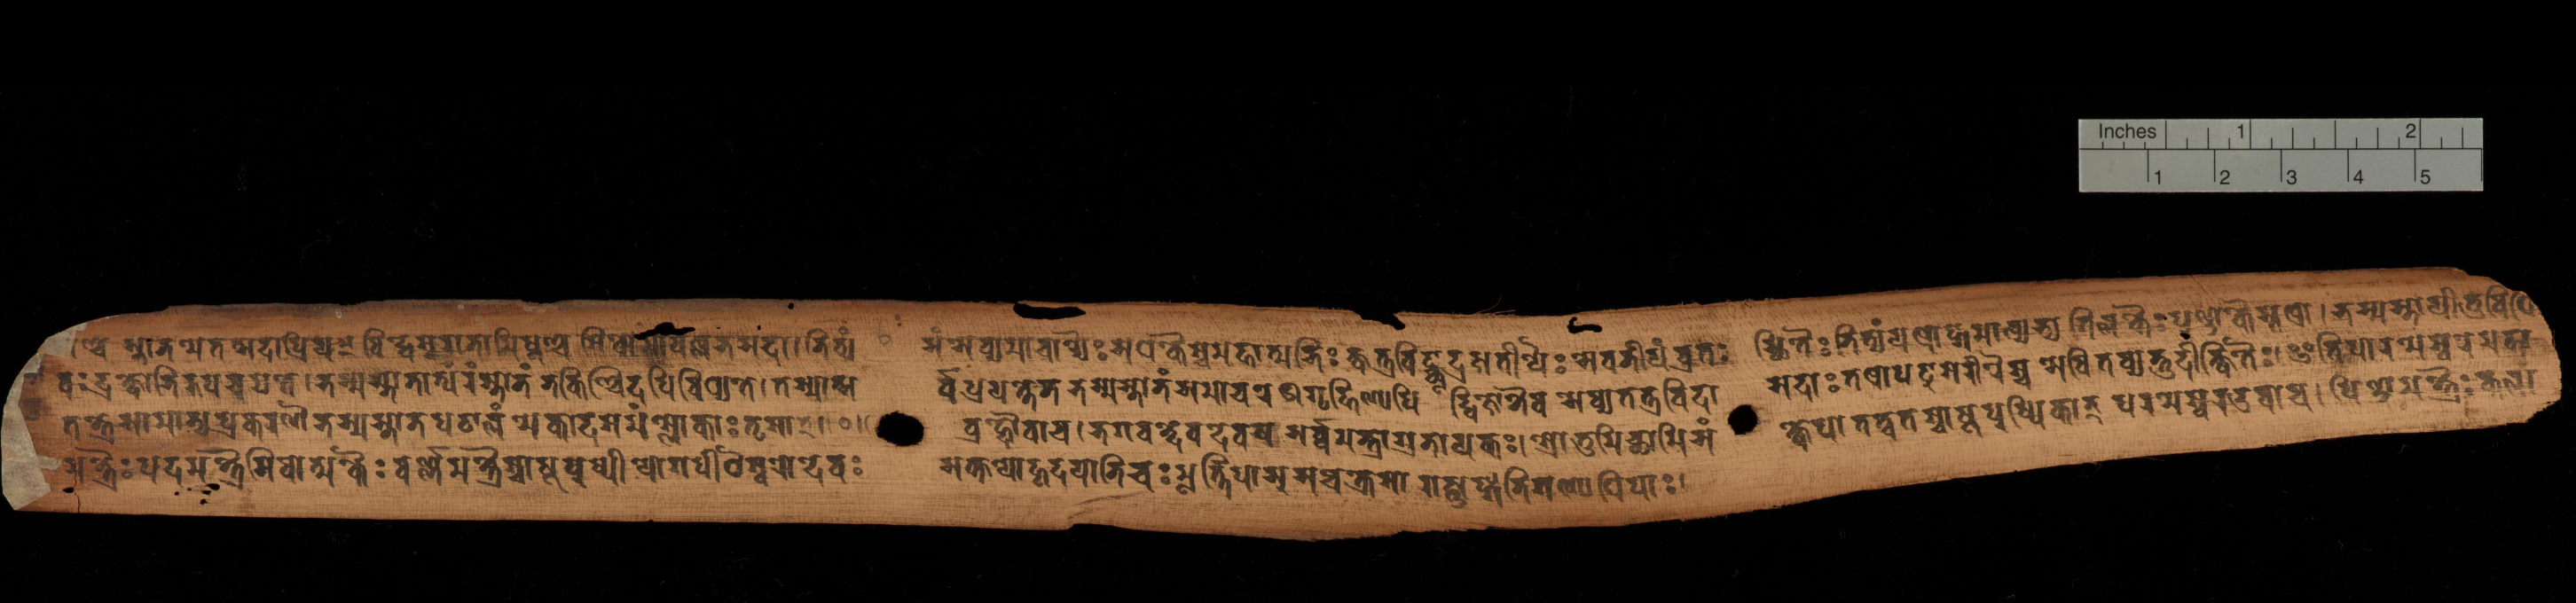 "Pārameśvaratantra Cambridge University Library MS Add.1049.1. f. 12 of 124. ""One of the oldest known dated Sanskrit manuscripts from South Asia, this specimen transmits a substantial portion of the Pārameśvaratantra, a scripture of the Śaiva Siddhānta, one of the Tantric theological schools that taught the worship of Śiva as ""Supreme Lord"" (the literal meaning of Parameśvara). No other manuscript of this work is known, but nine chapters are transmitted in the Prāyaścittasamuccaya of Hṛdayaśiva (see Add. 2833), where the work is referred to as the Puskaratantra or Puṣkara-Pārameśvaratantra (see Goodall 1998, particularly p. xliii). According to the colophon, it was copied in the year 252, which some scholars judge to be of the era established by the Nepalese king Aṃśuvarman (also known as Mānadeva), therefore corresponding to 828 CE."""